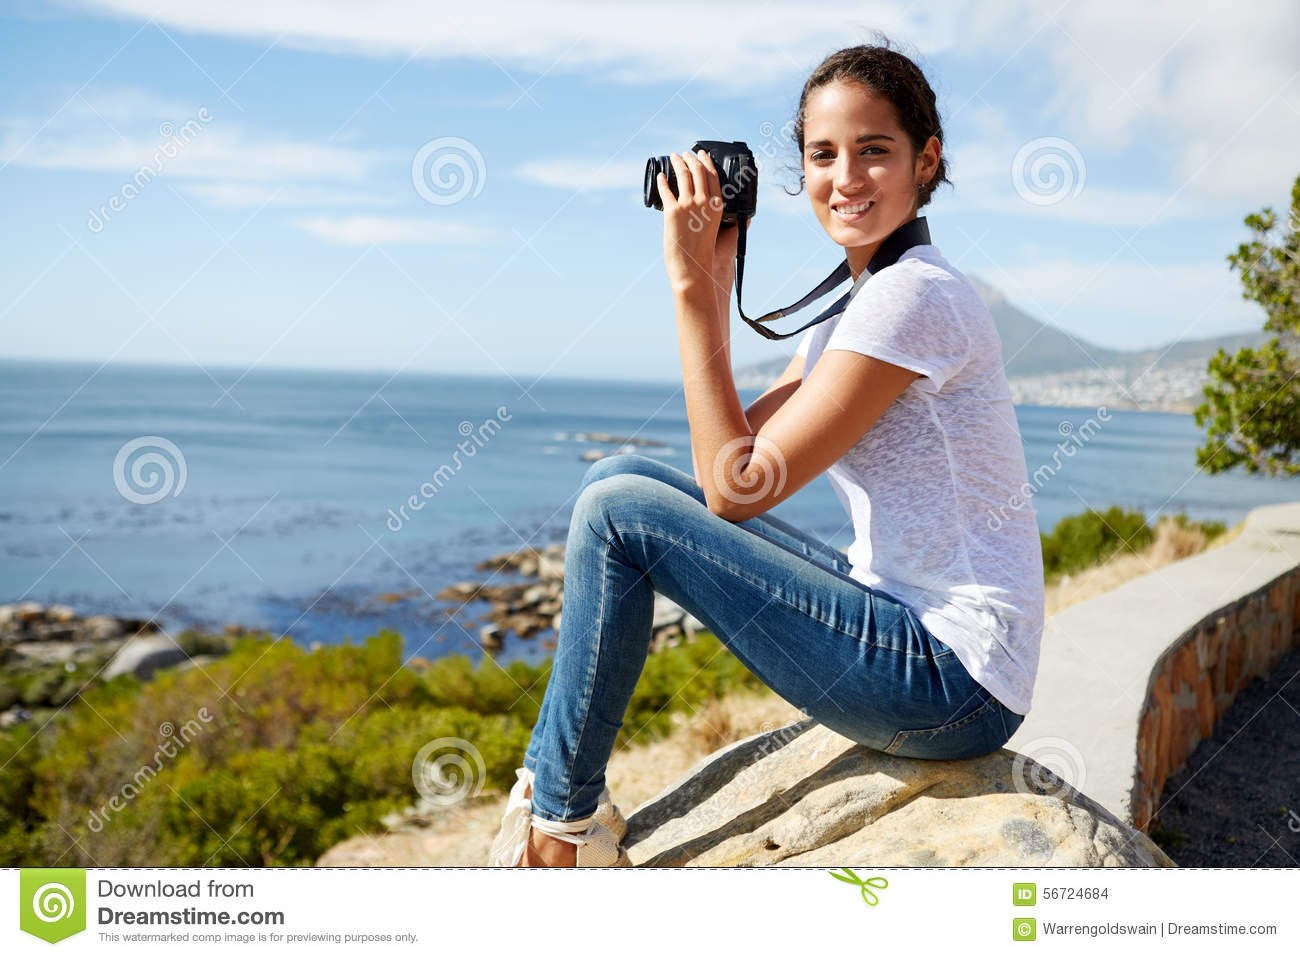 Portrait of a young, attractive woman sitting on a rock with dig